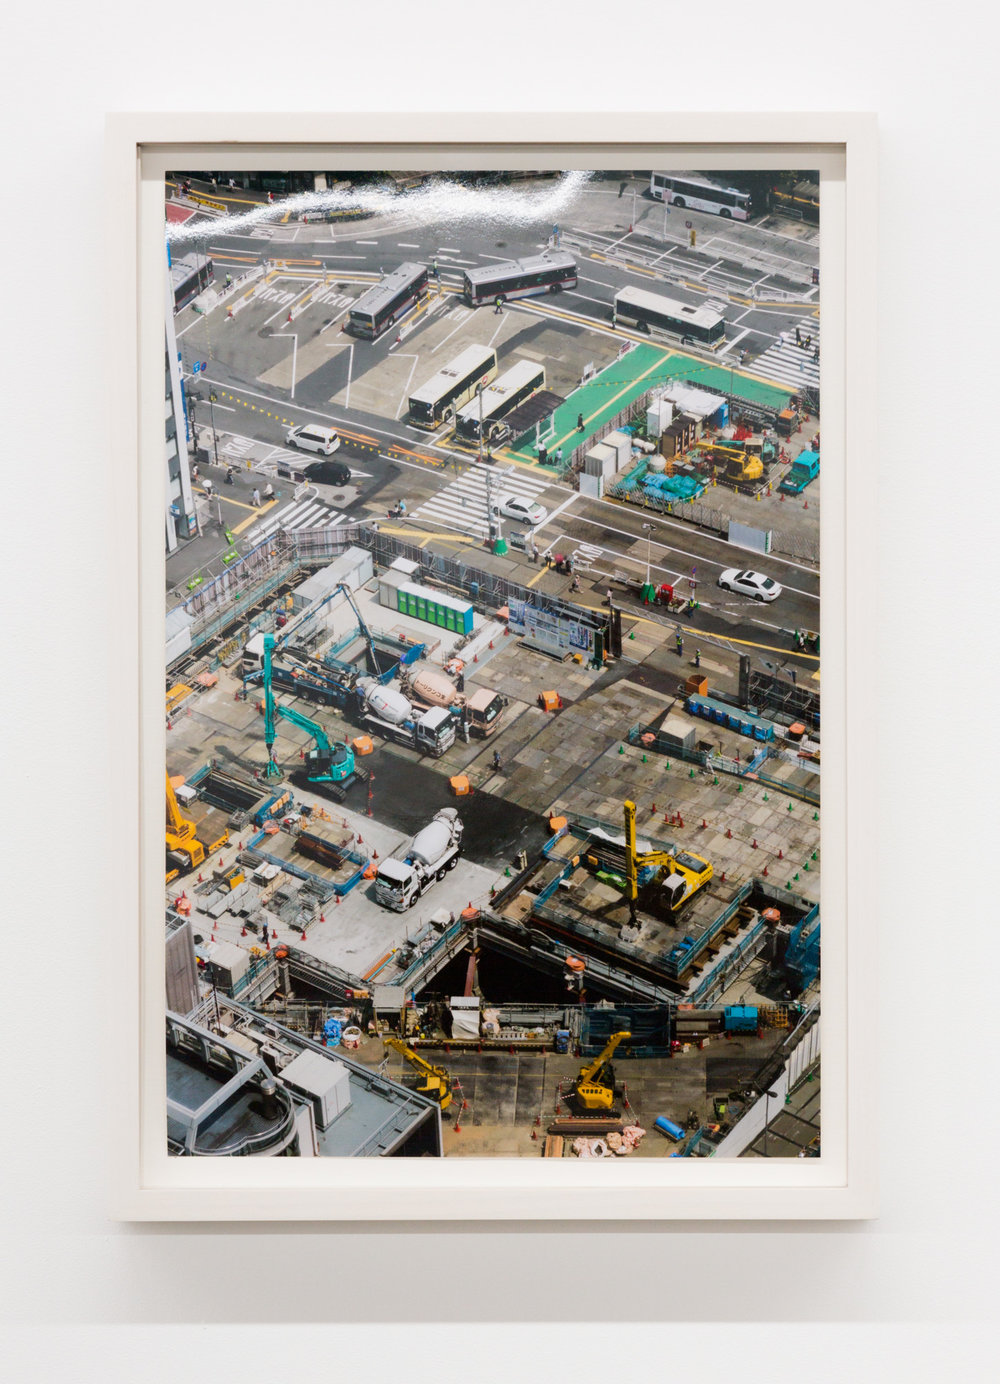 Untitled (Shibuya II), Tokyo, Japan,  2017, Chromira print on Glossy Fujicolor Crystal Archive Paper, Unframed: 14 x 9 1/3 inches, Framed: 15 3⁄4 x 12 5/8 x 1 3/8 inches